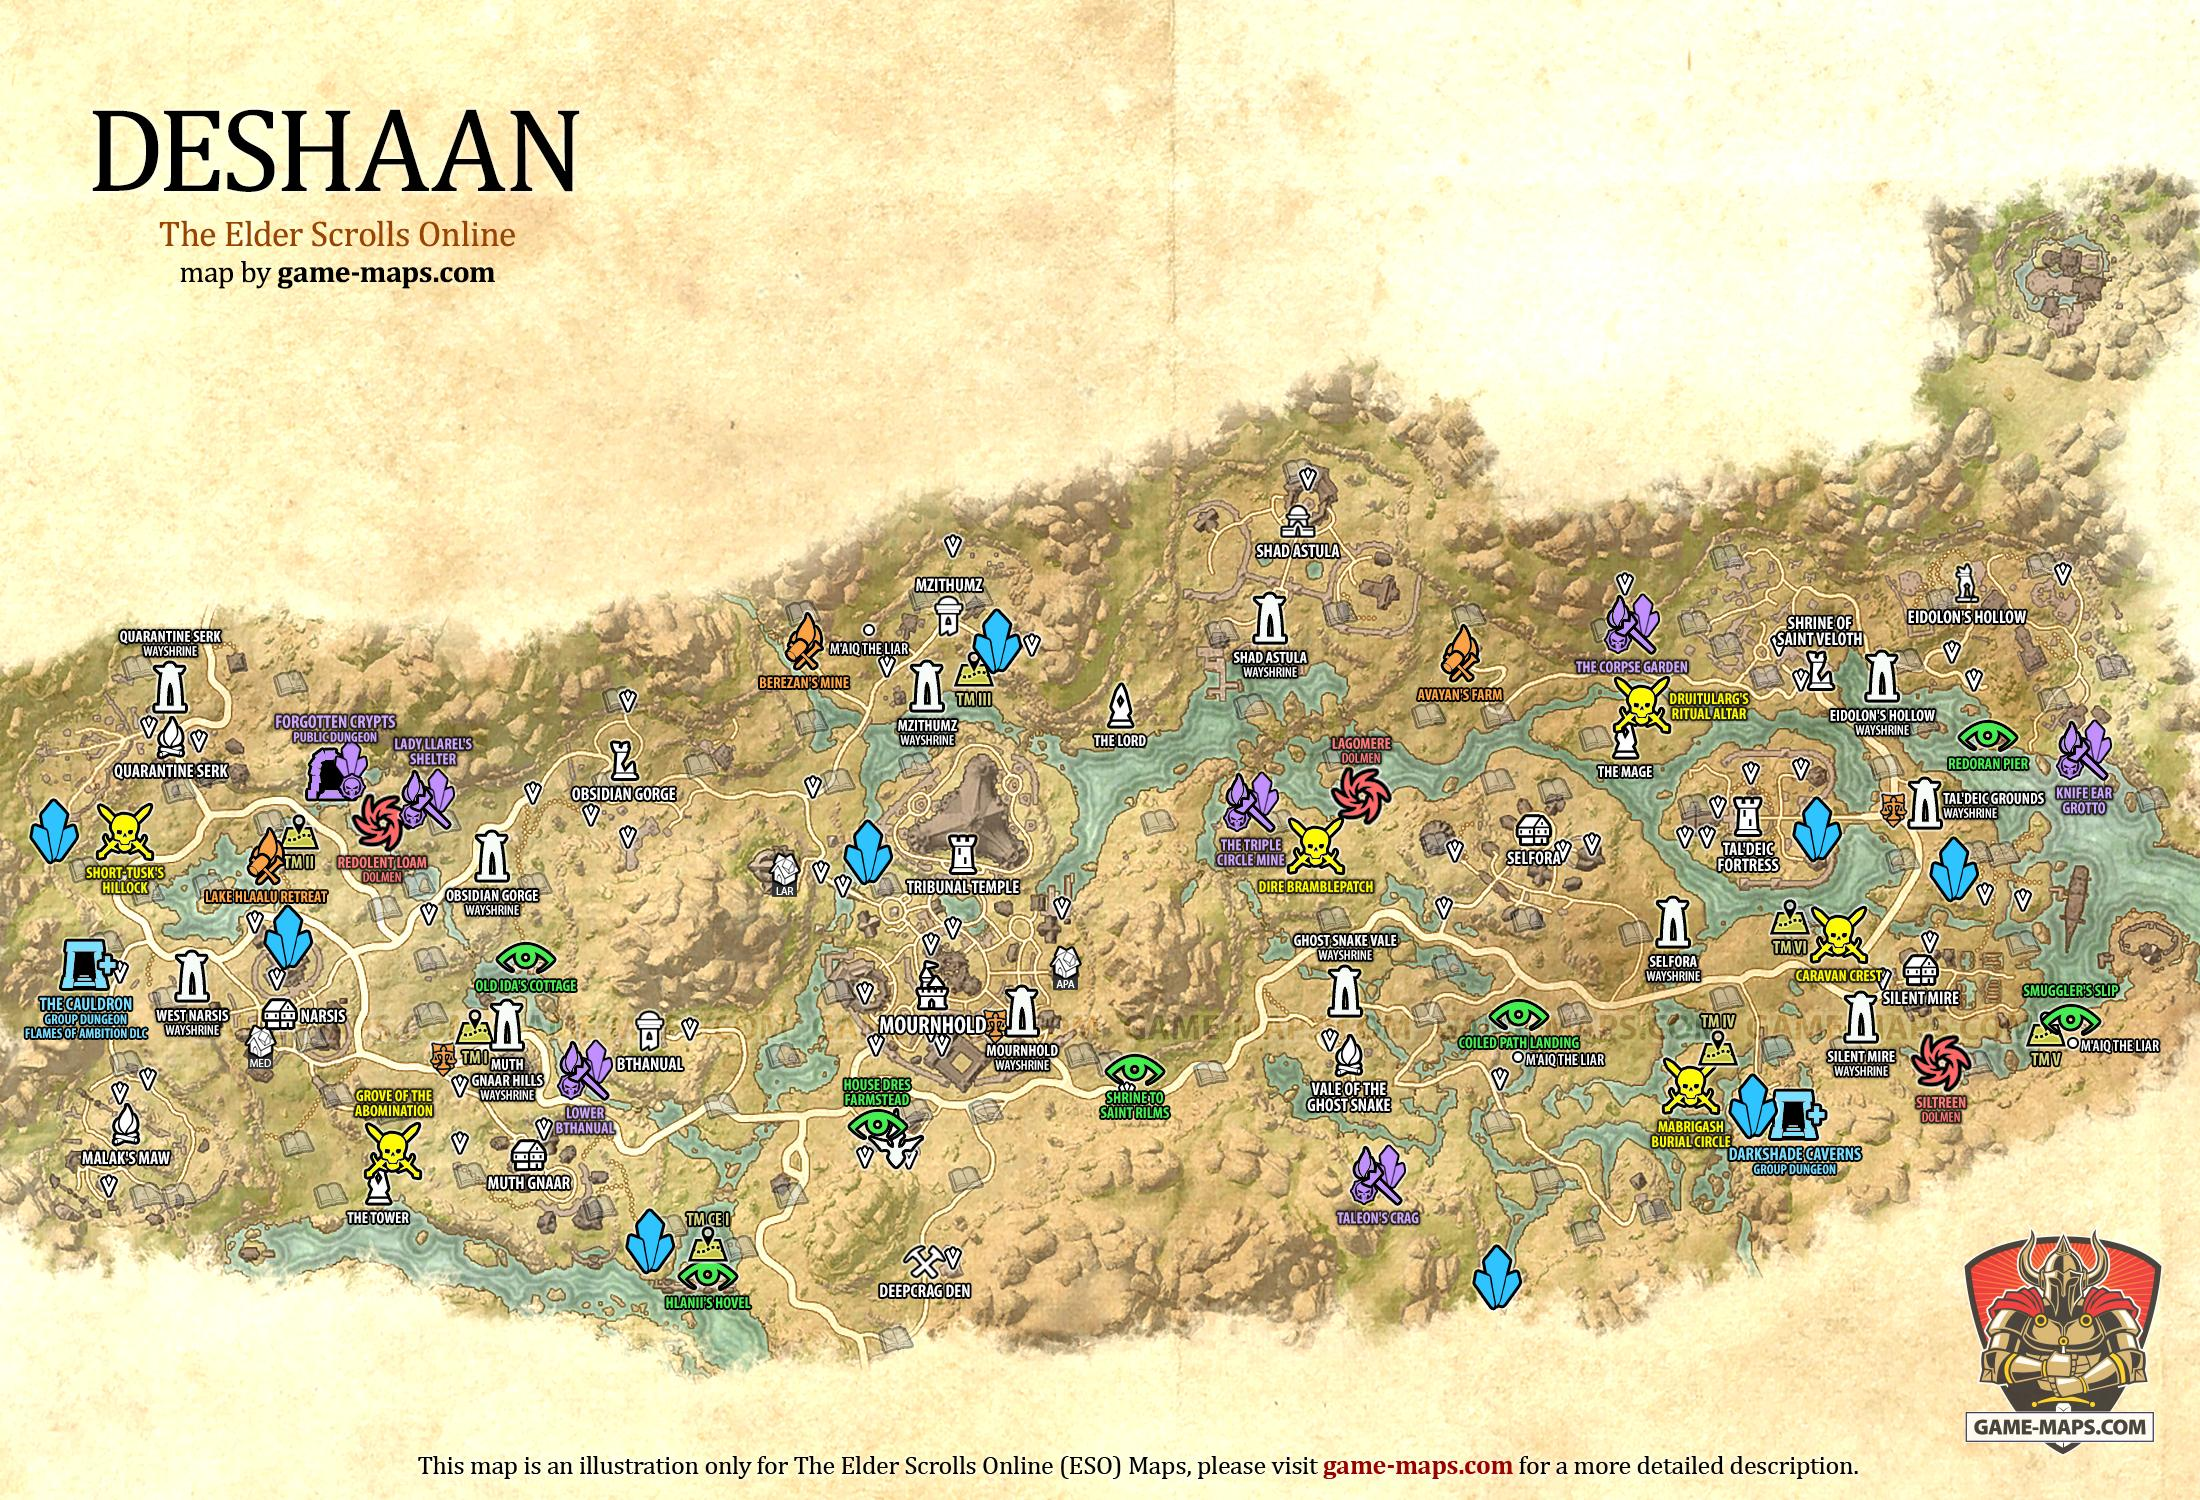 Deshaan Map - The Elder Scrolls Online | game-maps.com on